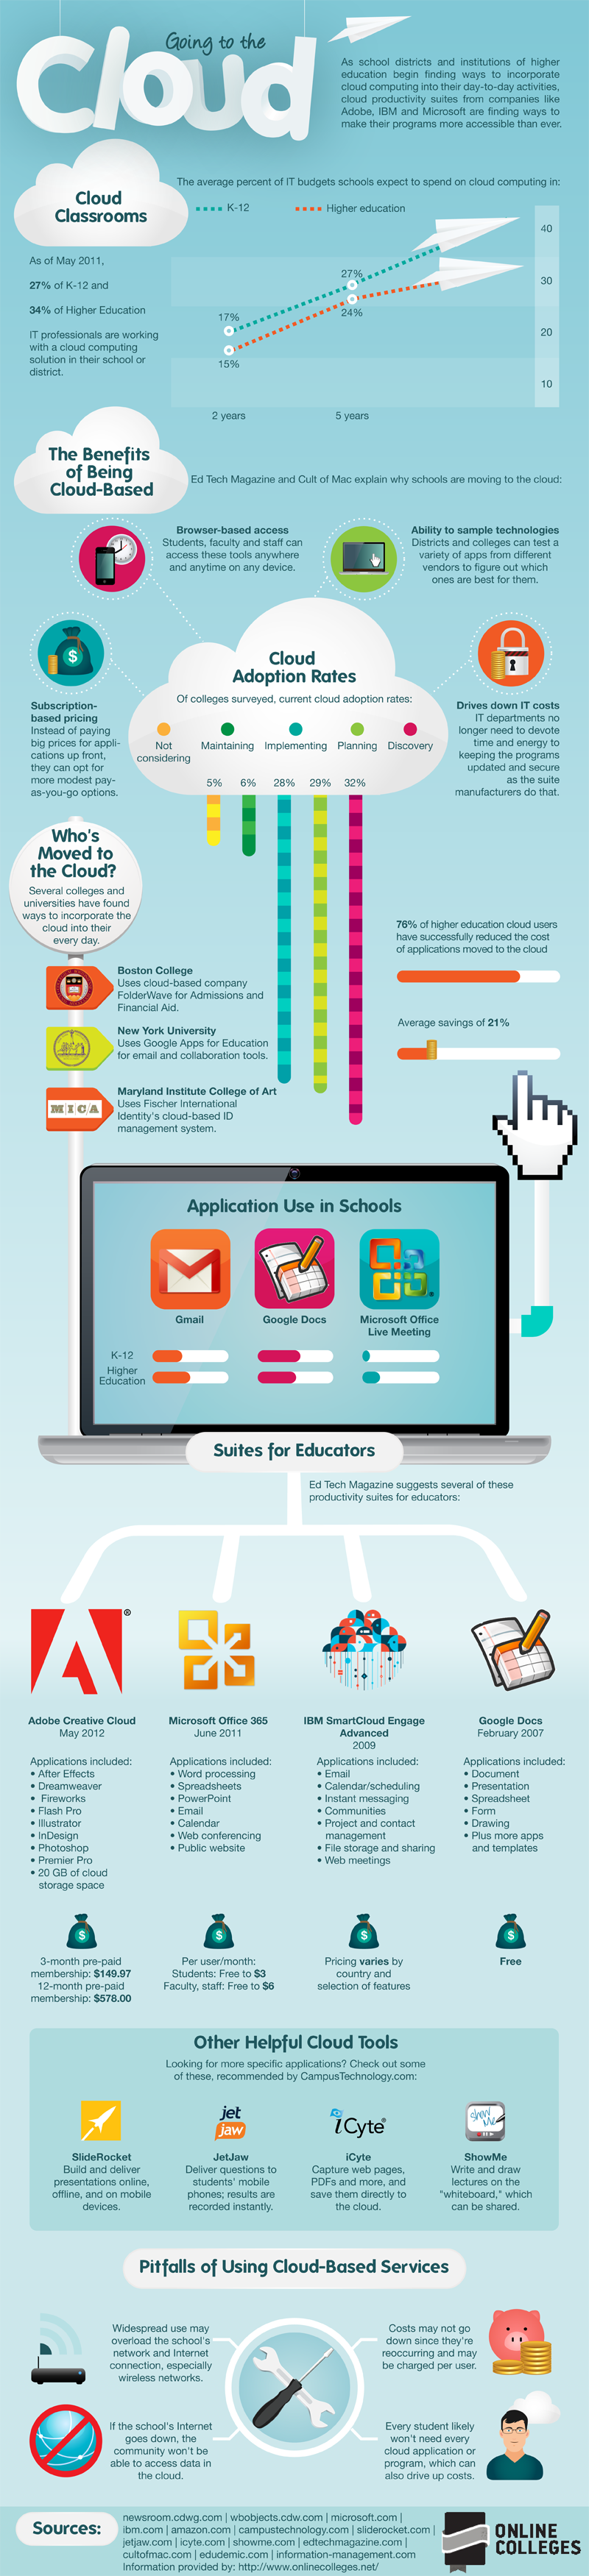 Education...Going to the Cloud